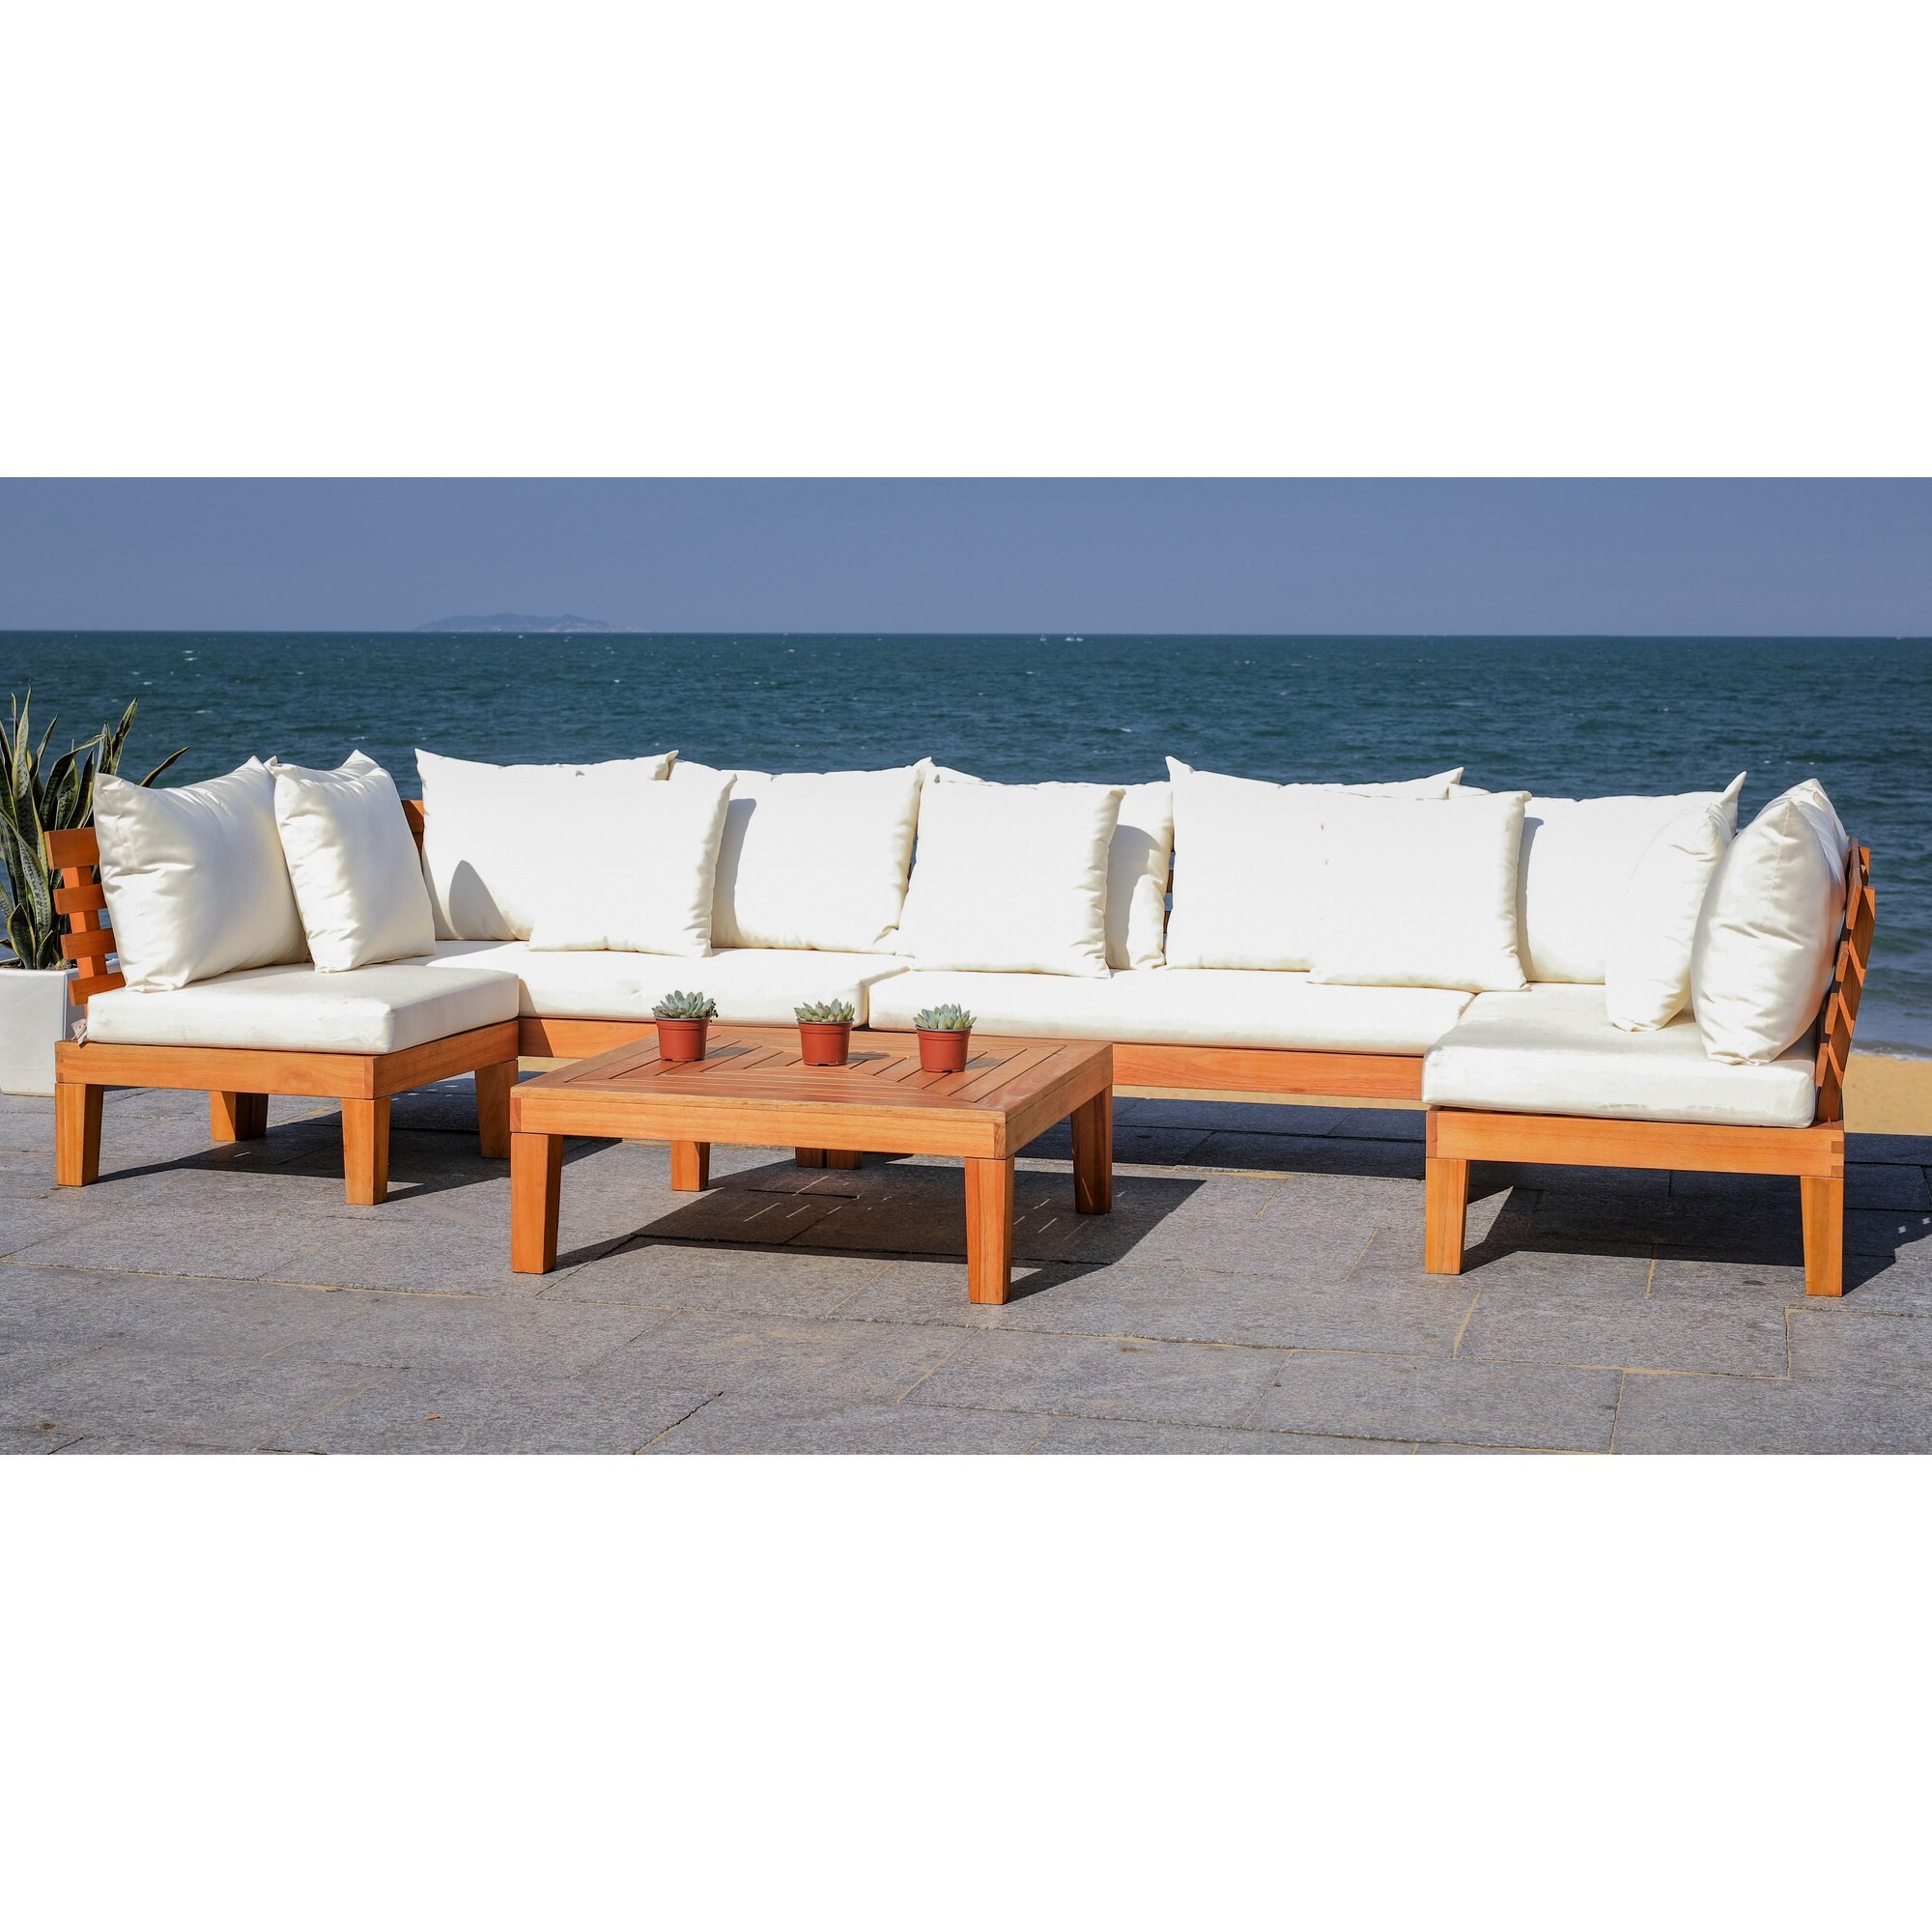 Greta Living Patio Sectional With Cushions Regarding Most Current Greta Living Patio Sectionals With Cushions (Gallery 1 of 20)